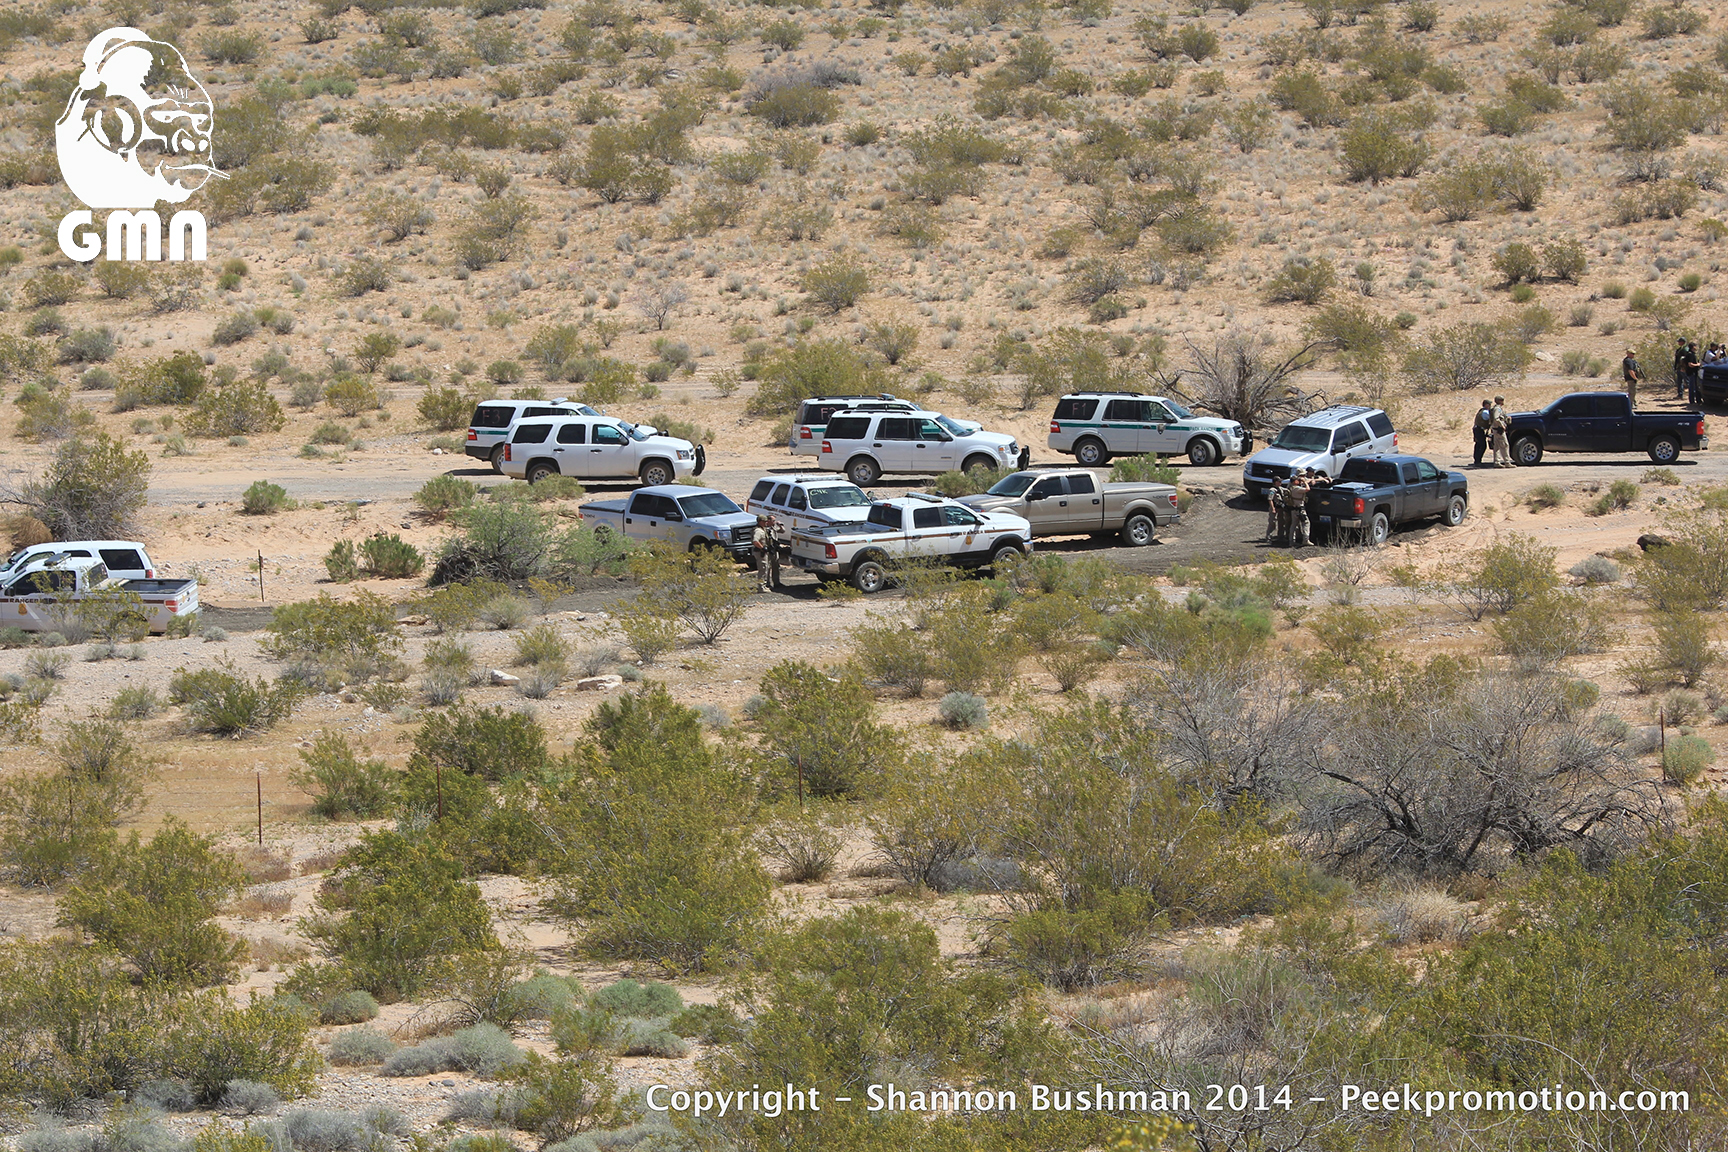 21WIREc-Bundy-Fed-Standoff-April-12-2014-Copyright-GMN